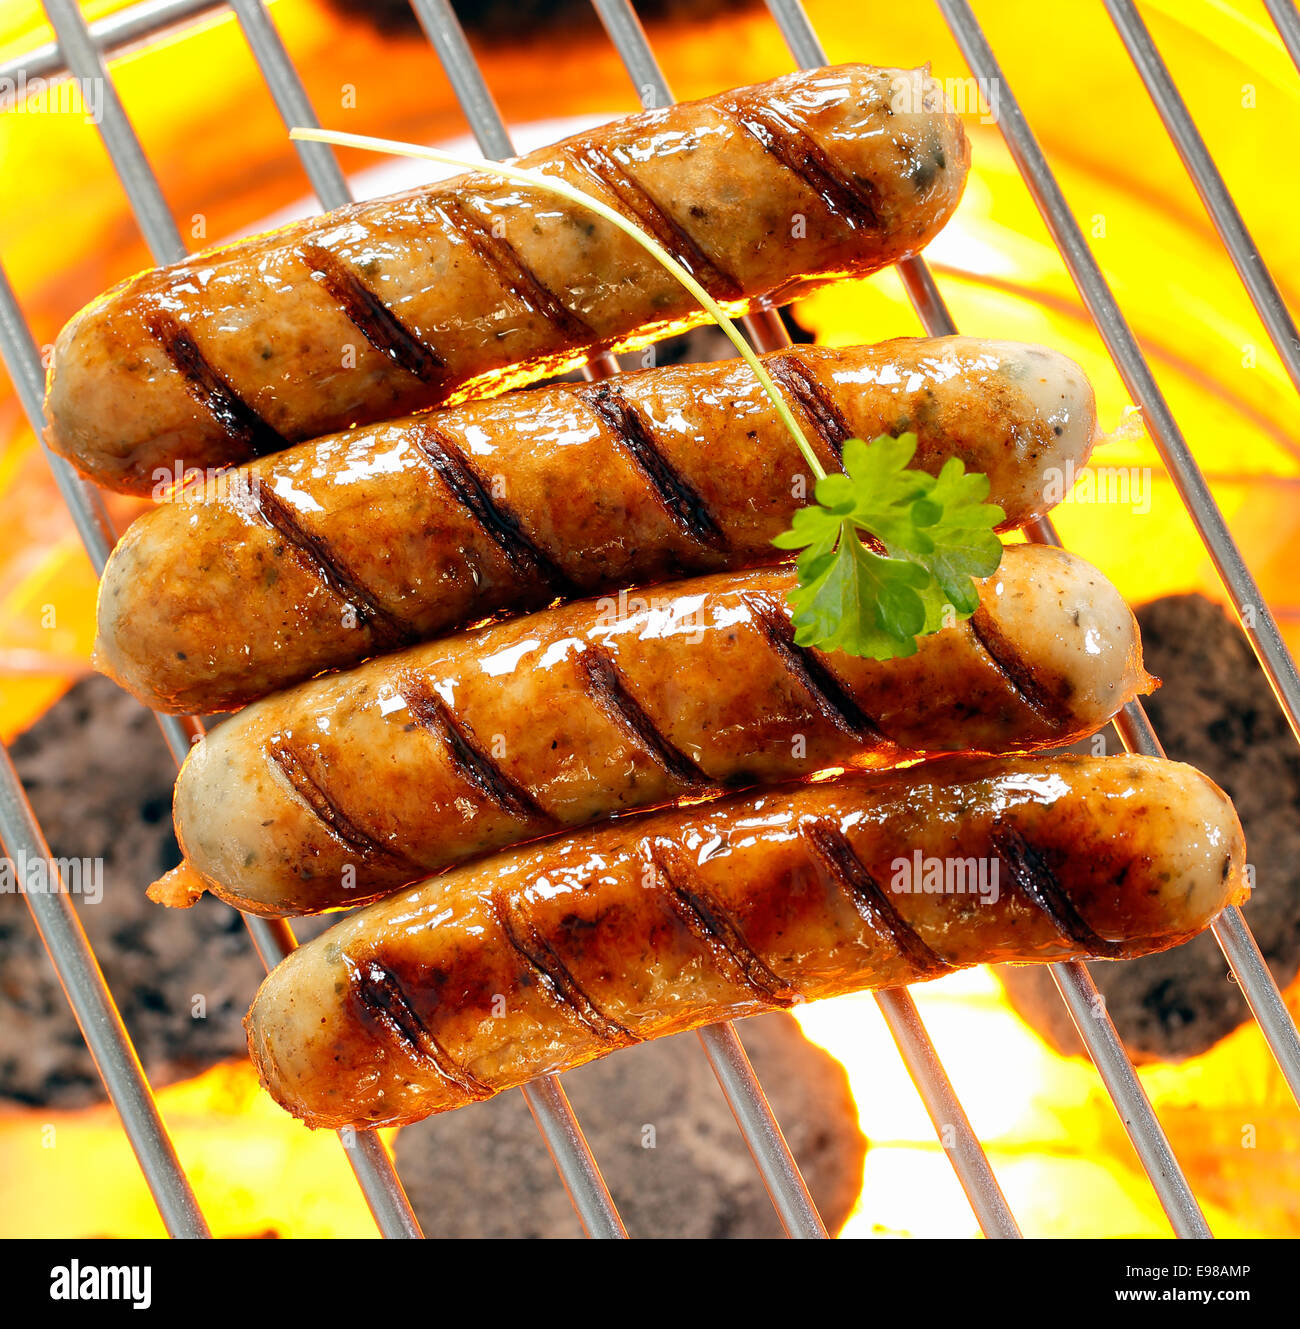 Helalthy smokies on barbecue with Open Flames - Stock Image